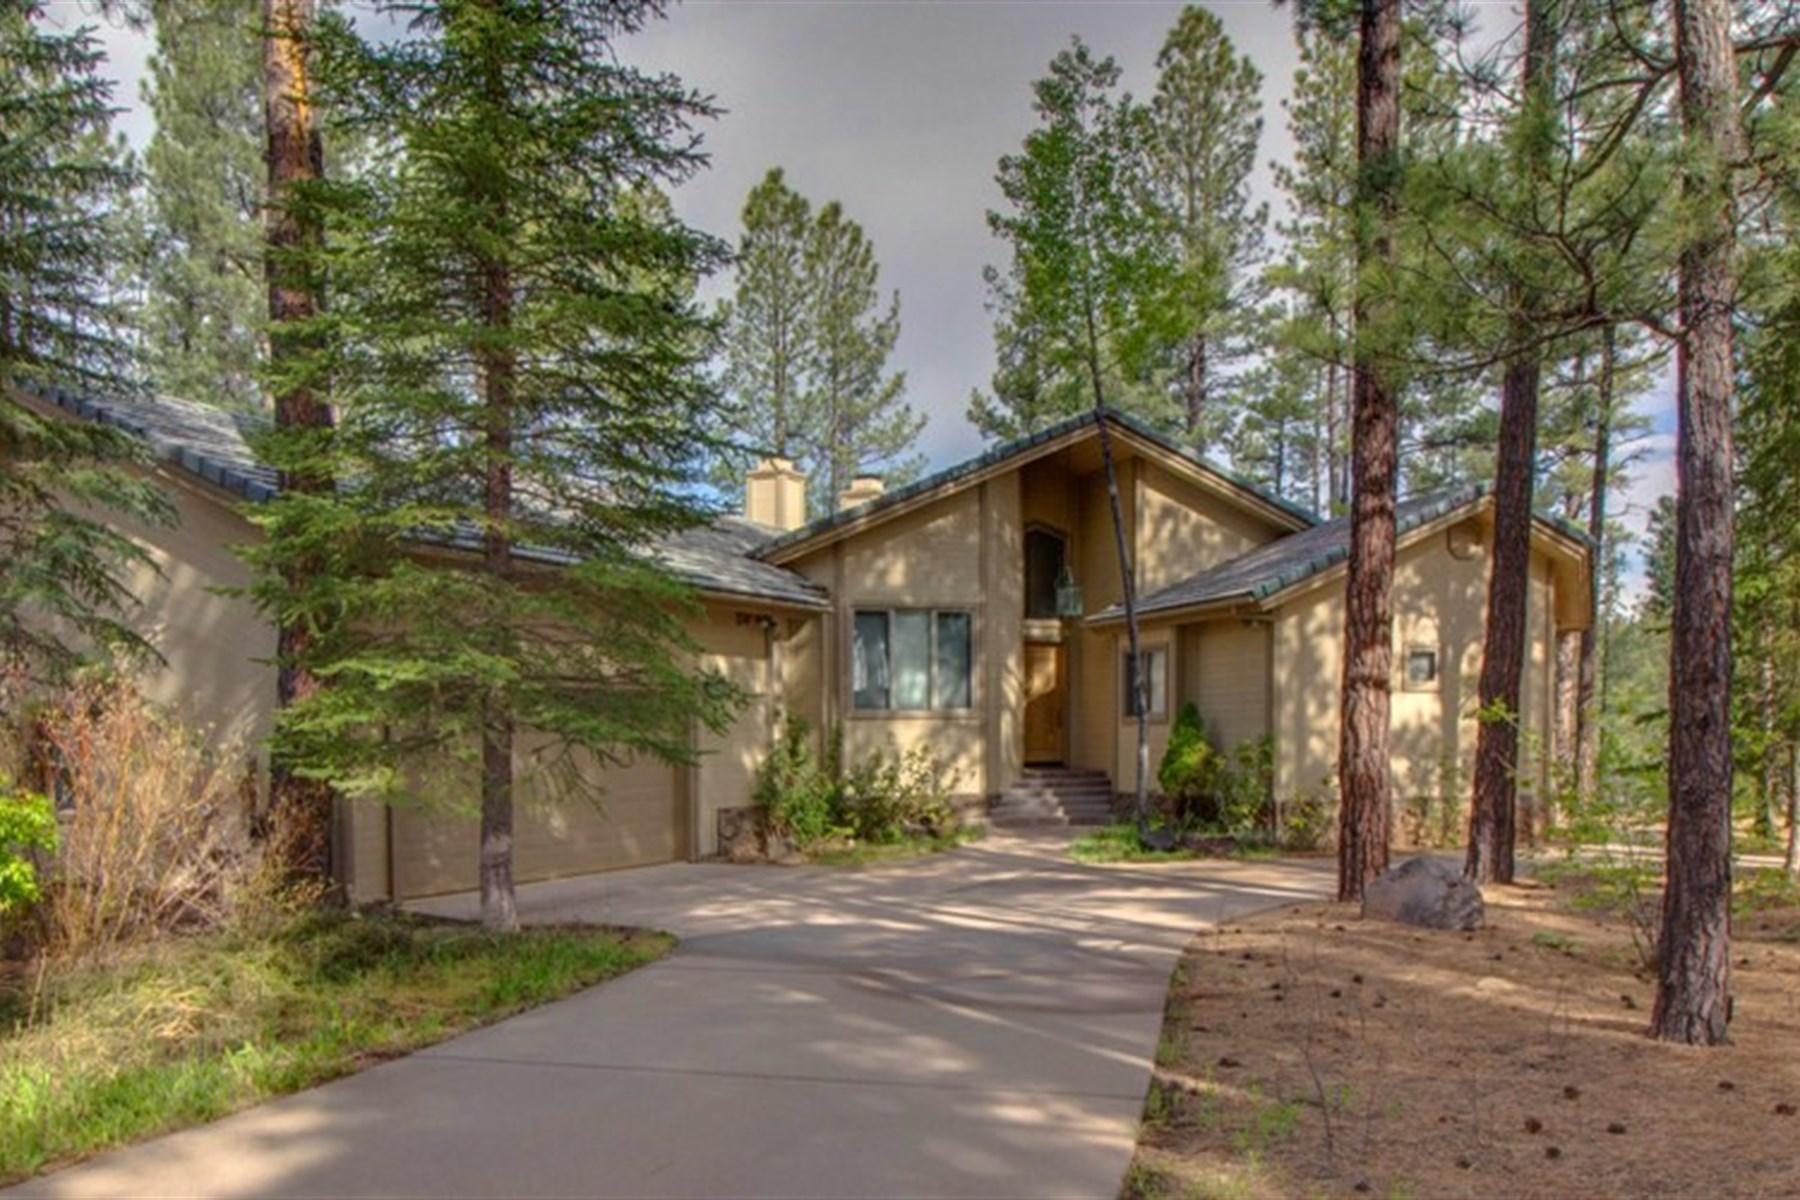 一戸建て のために 売買 アット Backing National Forest with stunning San Francisco Peak 2034 William Palmer Flagstaff, アリゾナ 86005 アメリカ合衆国